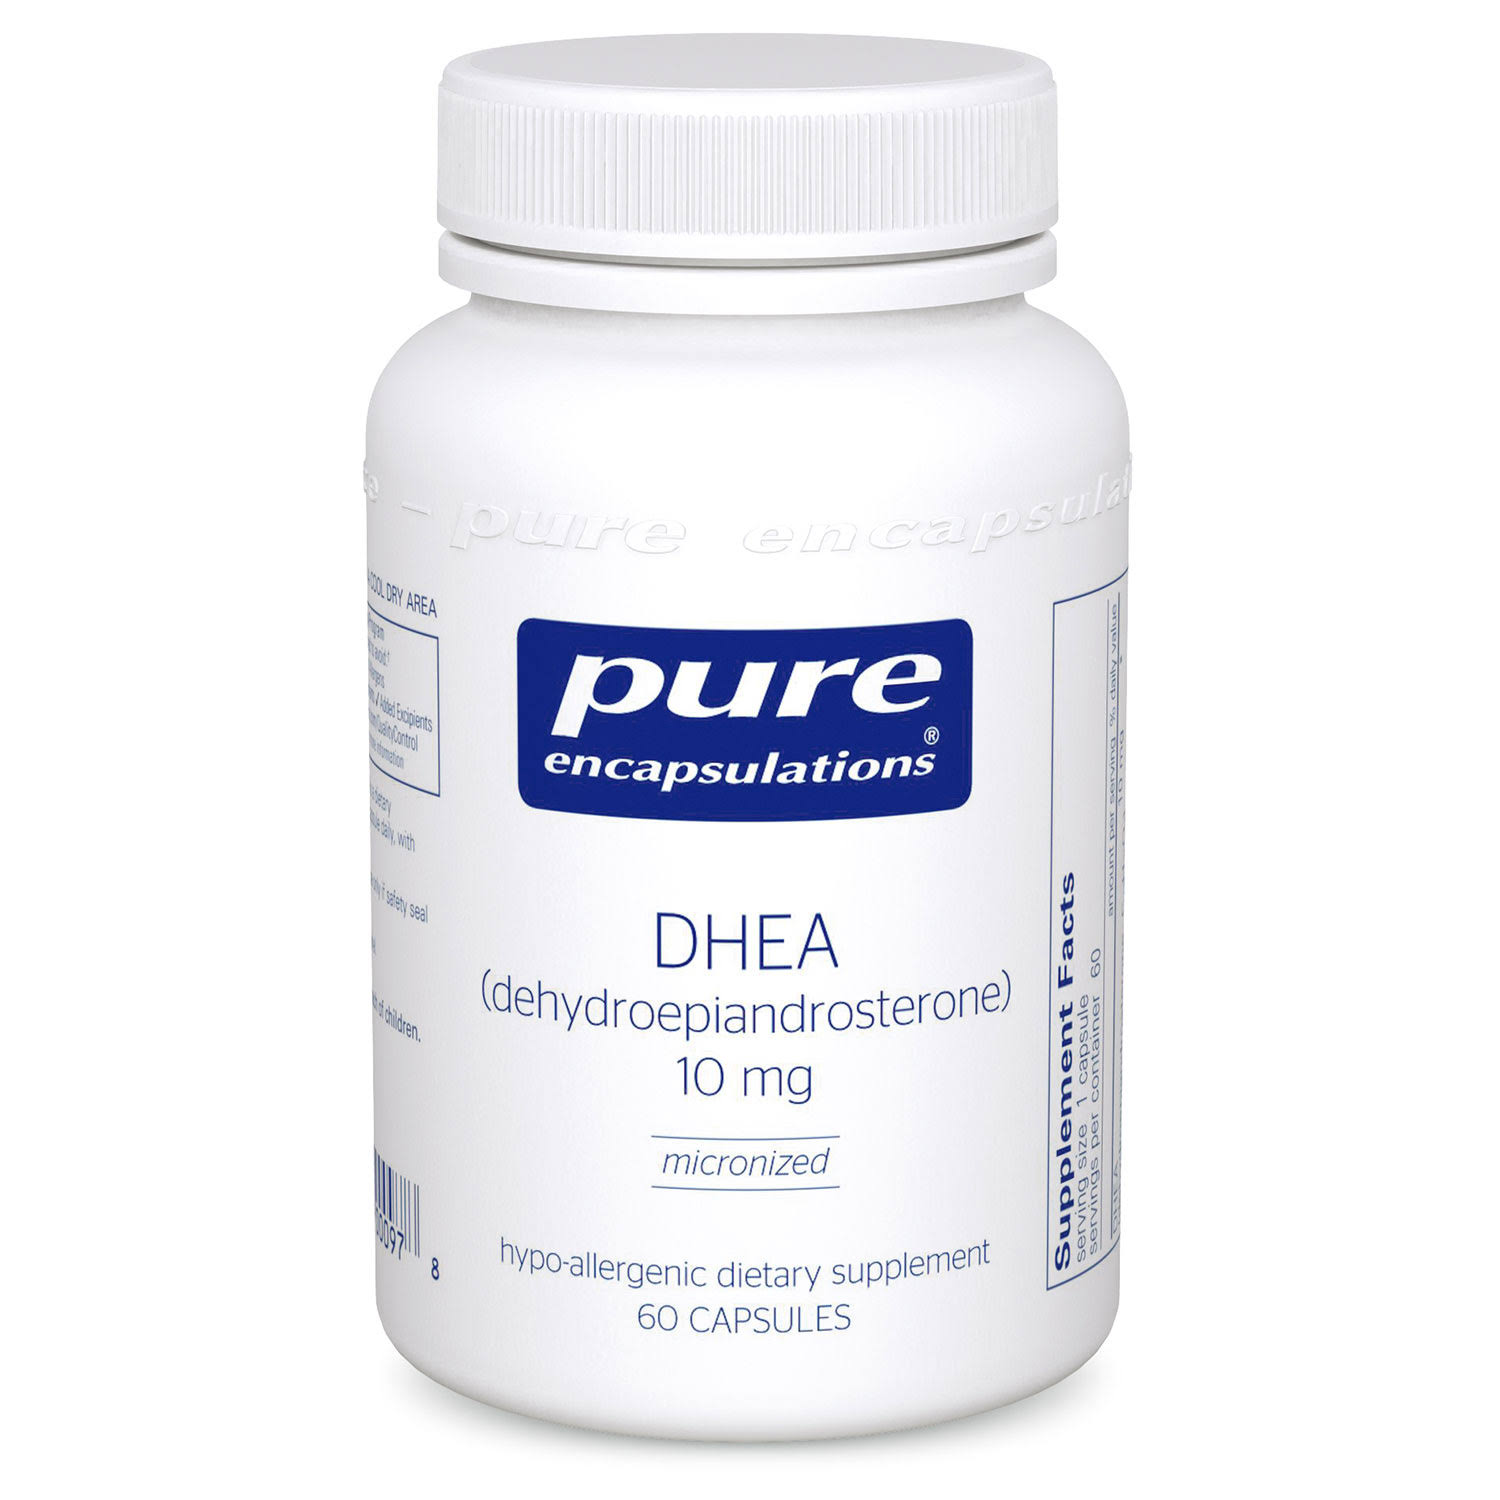 Pure Encapsulations Dhea Supplement - 10mg, 60ct